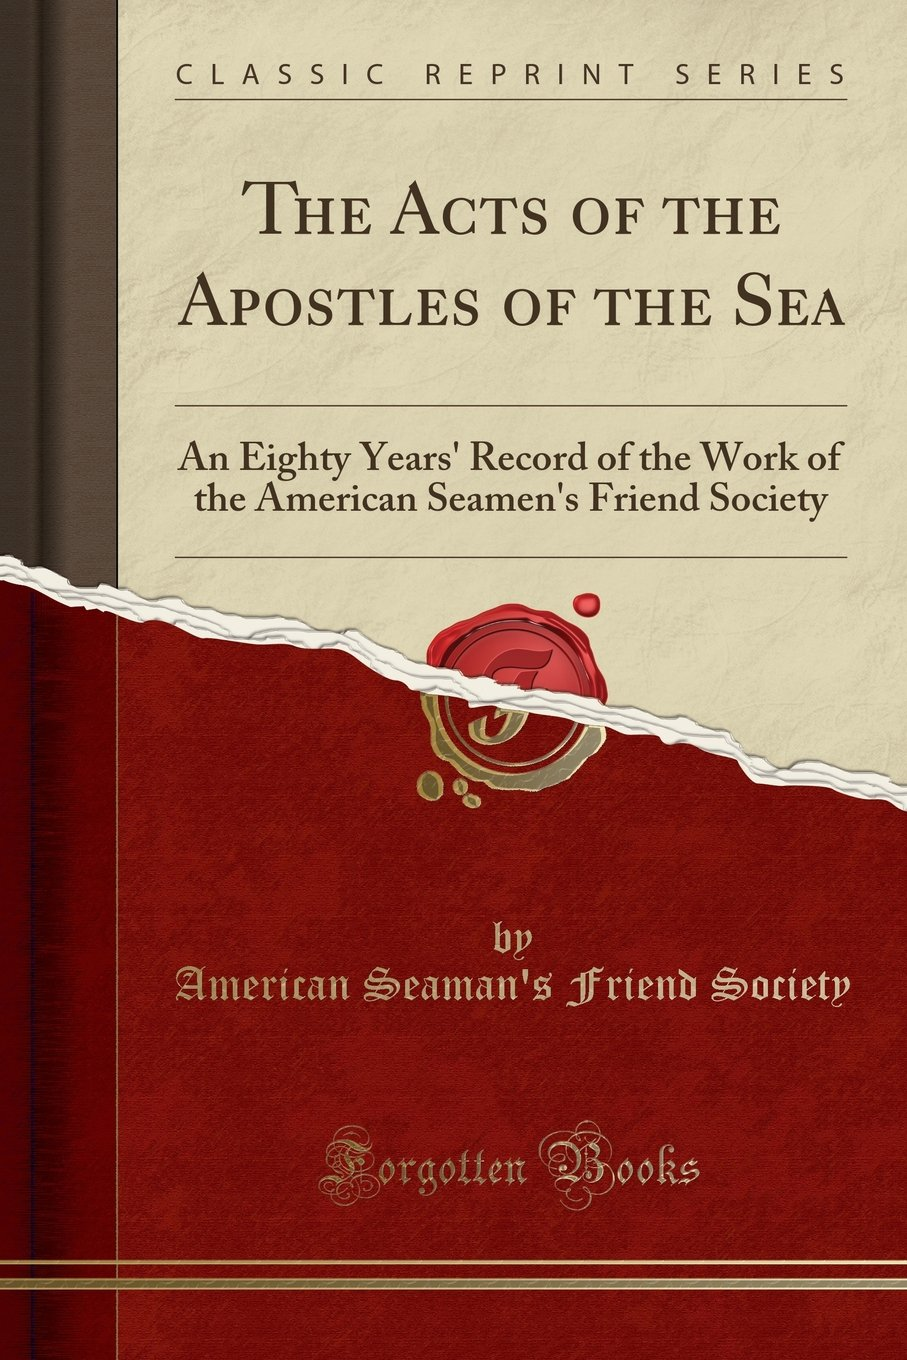 The Acts of the Apostles of the Sea: An Eighty Years' Record of the Work of the American Seamen's Friend Society (Classic Reprint) ebook